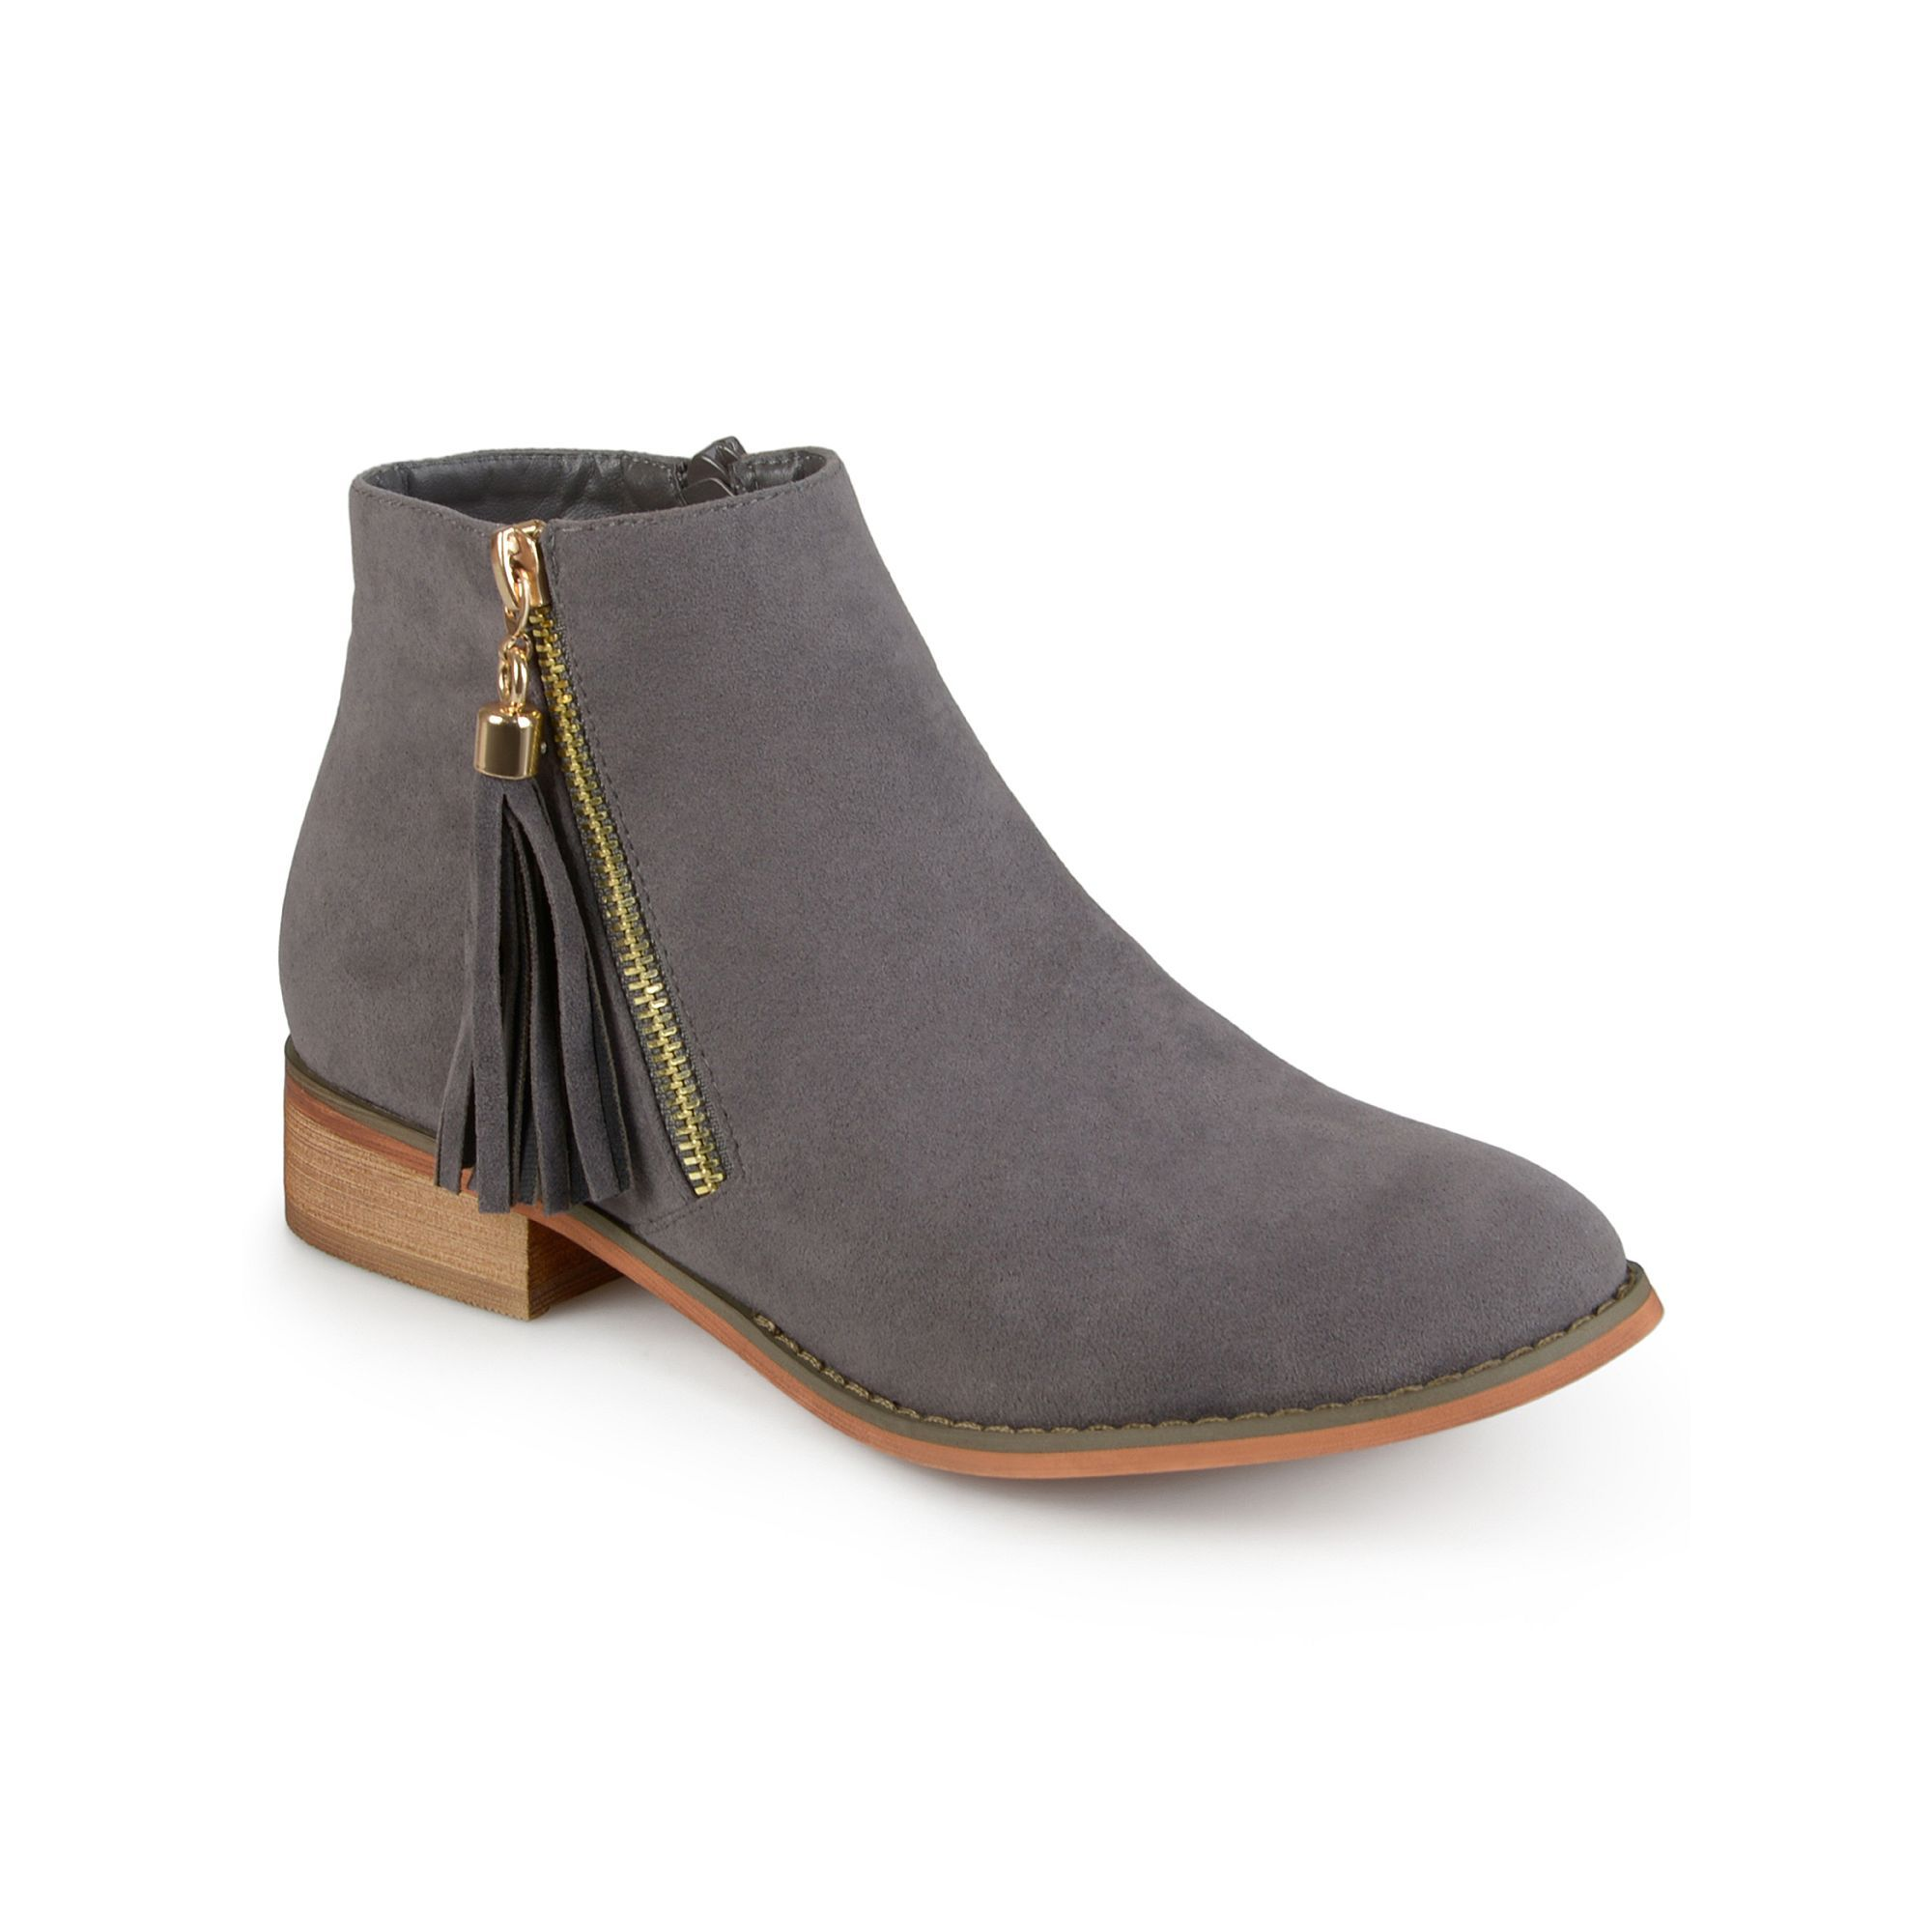 7883b5410c20 Journee Collection Trista Women s Ankle Boots